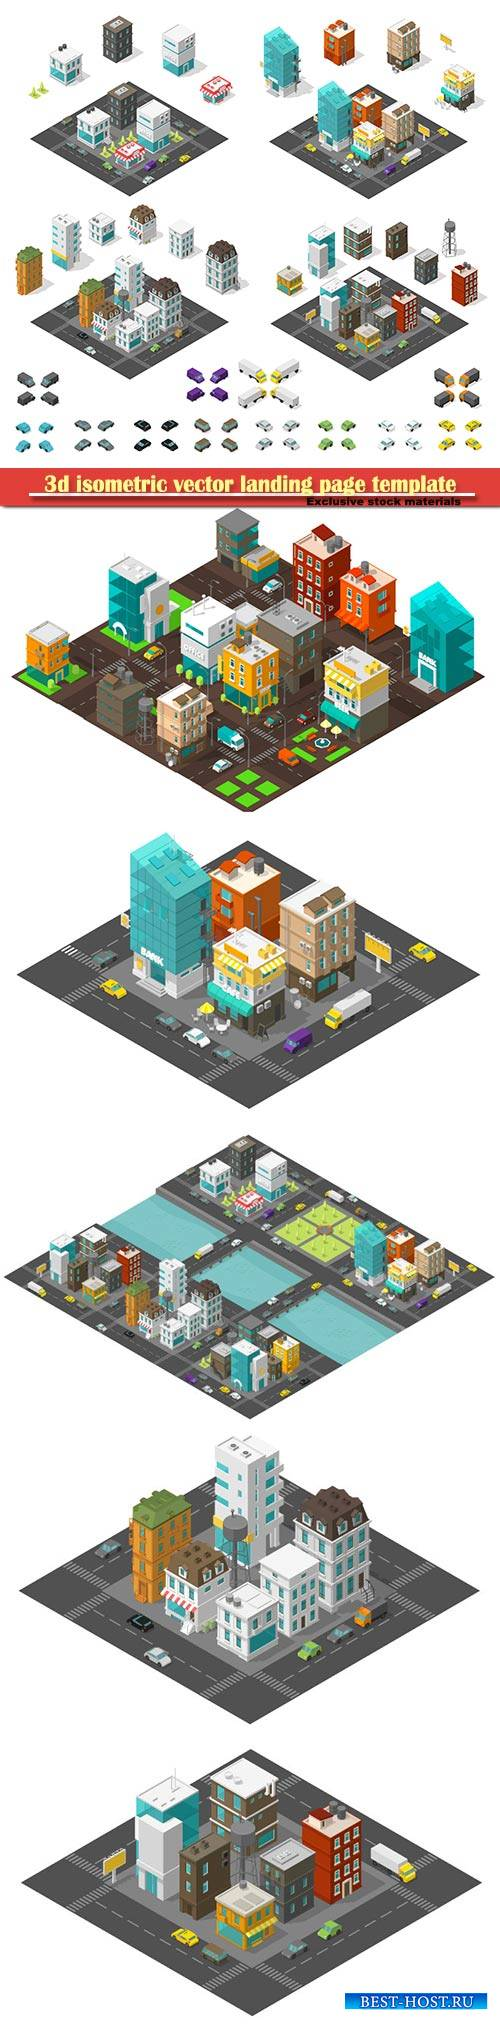 3d isometric vector landing page template # 2